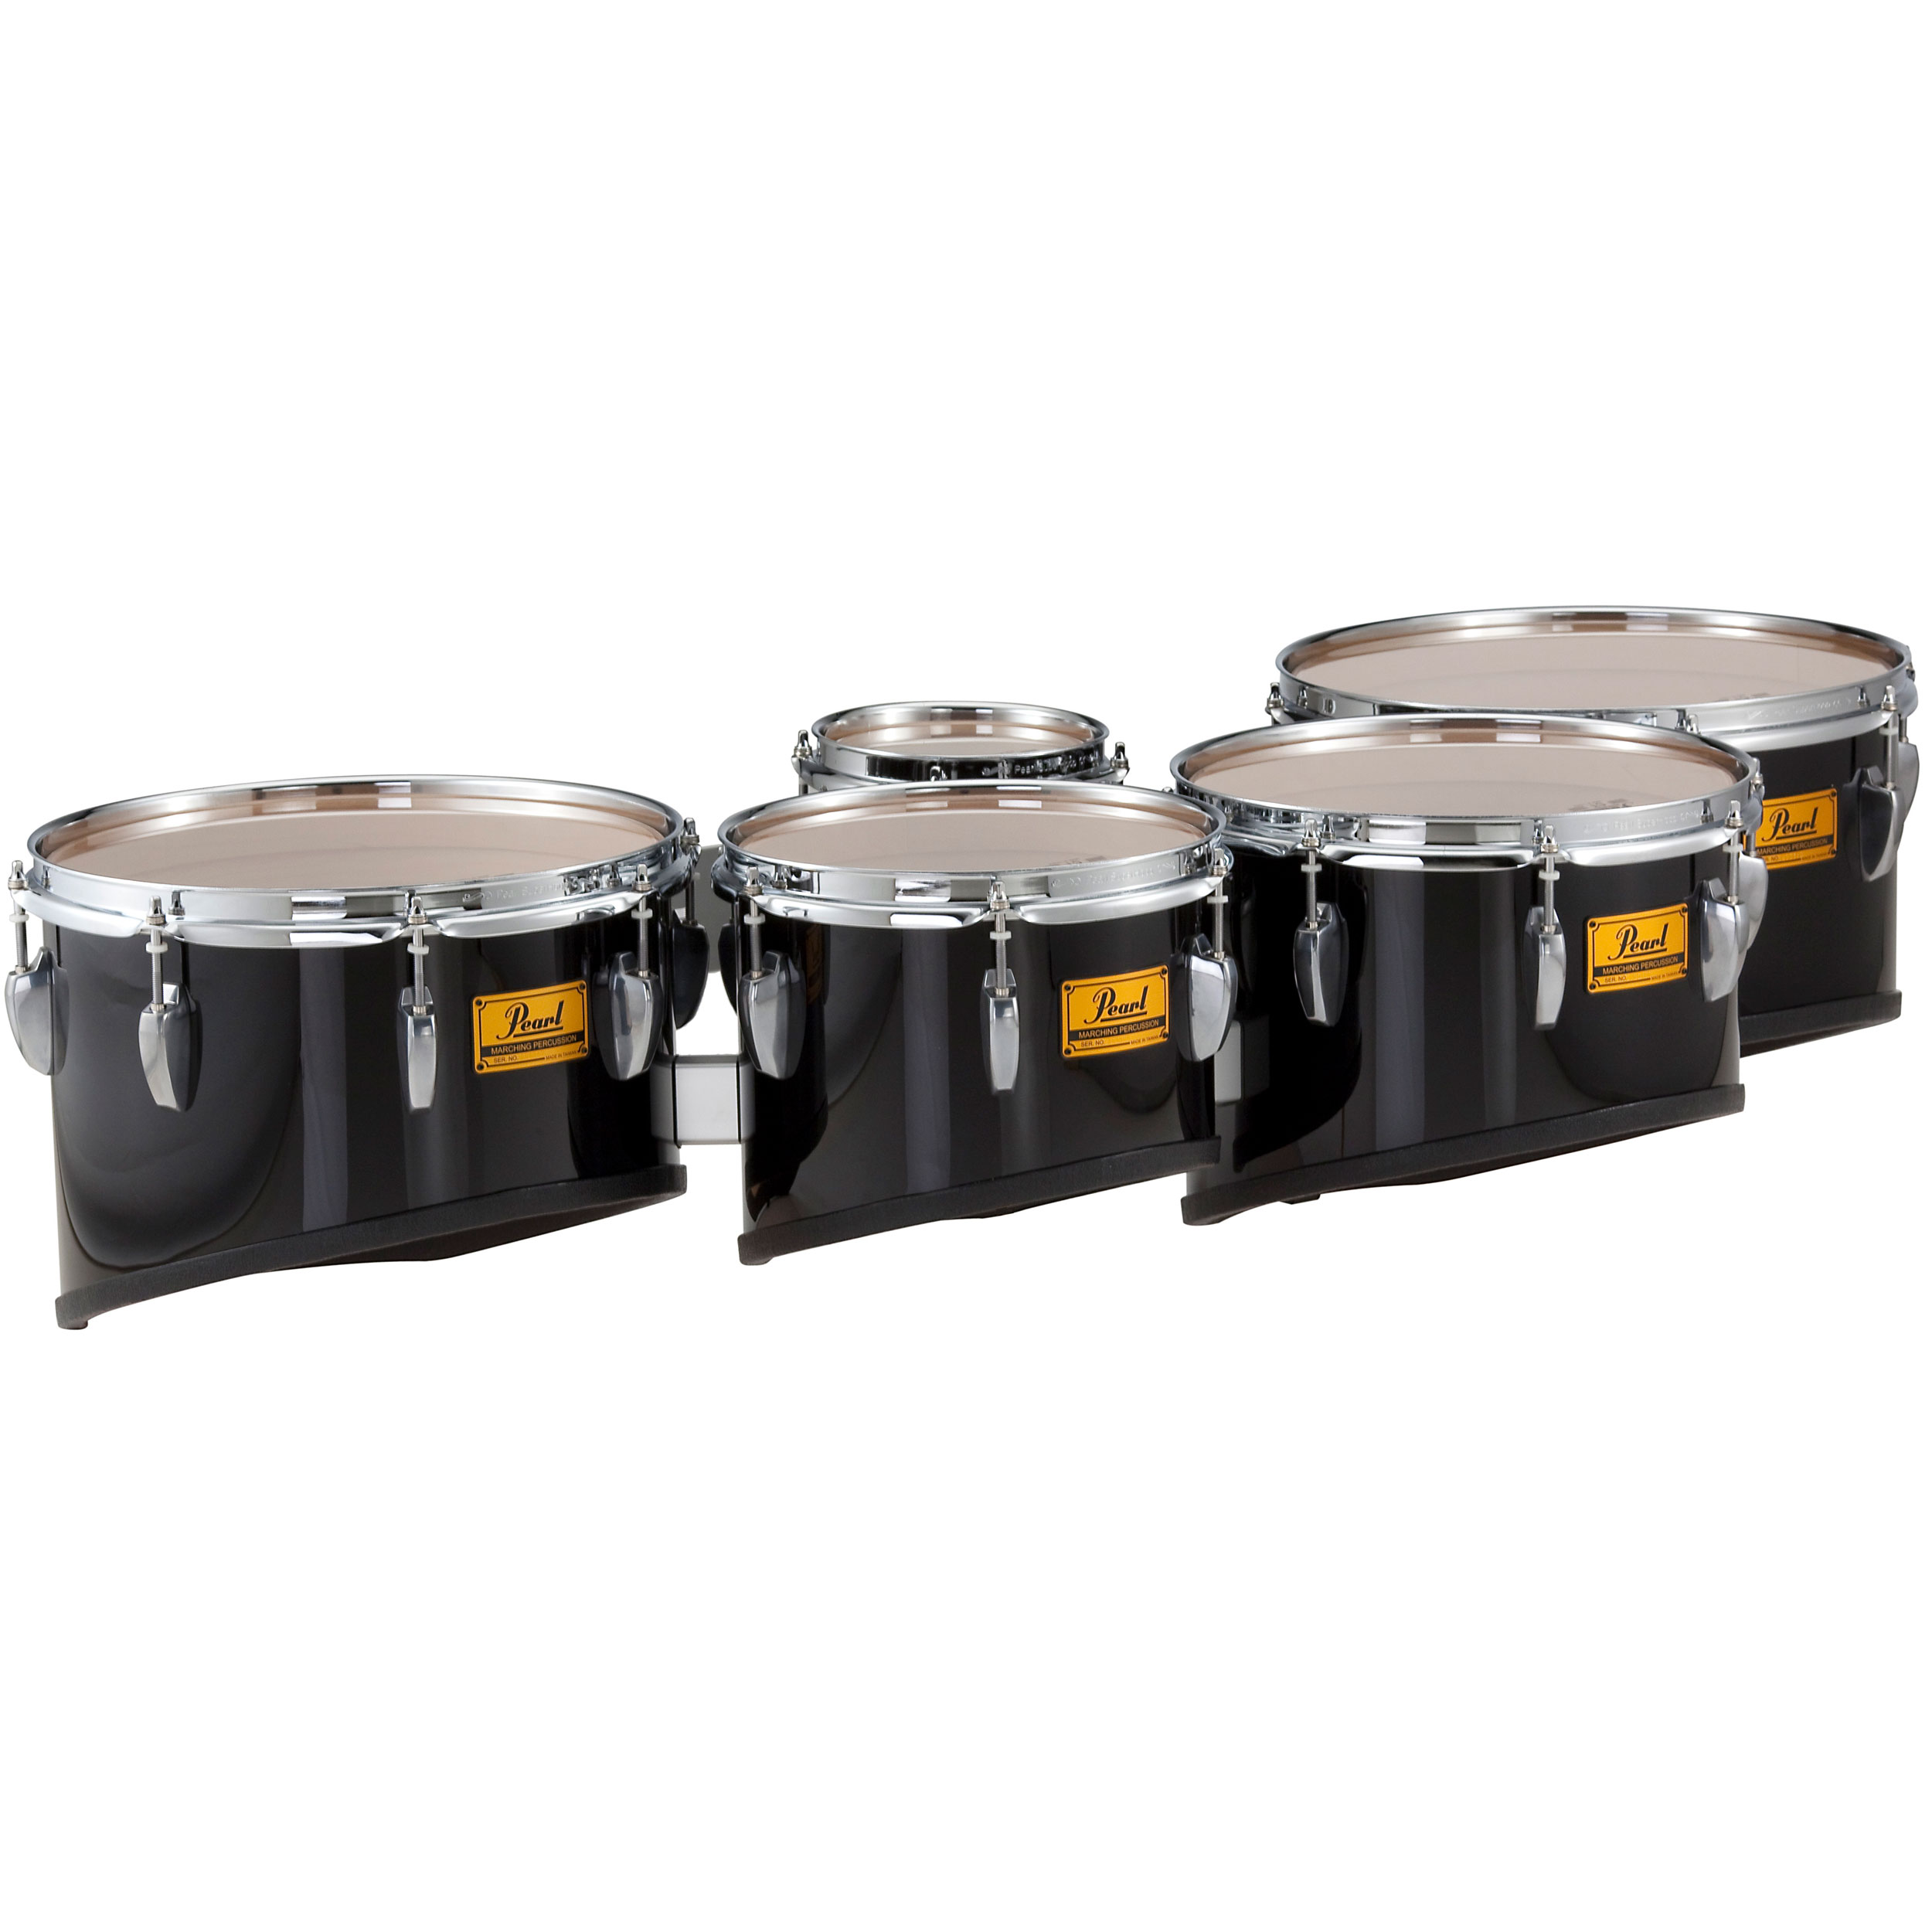 "Pearl 6-8-10-12-13"" PMTM Championship Maple Marching Tenors in Wrap Finish"